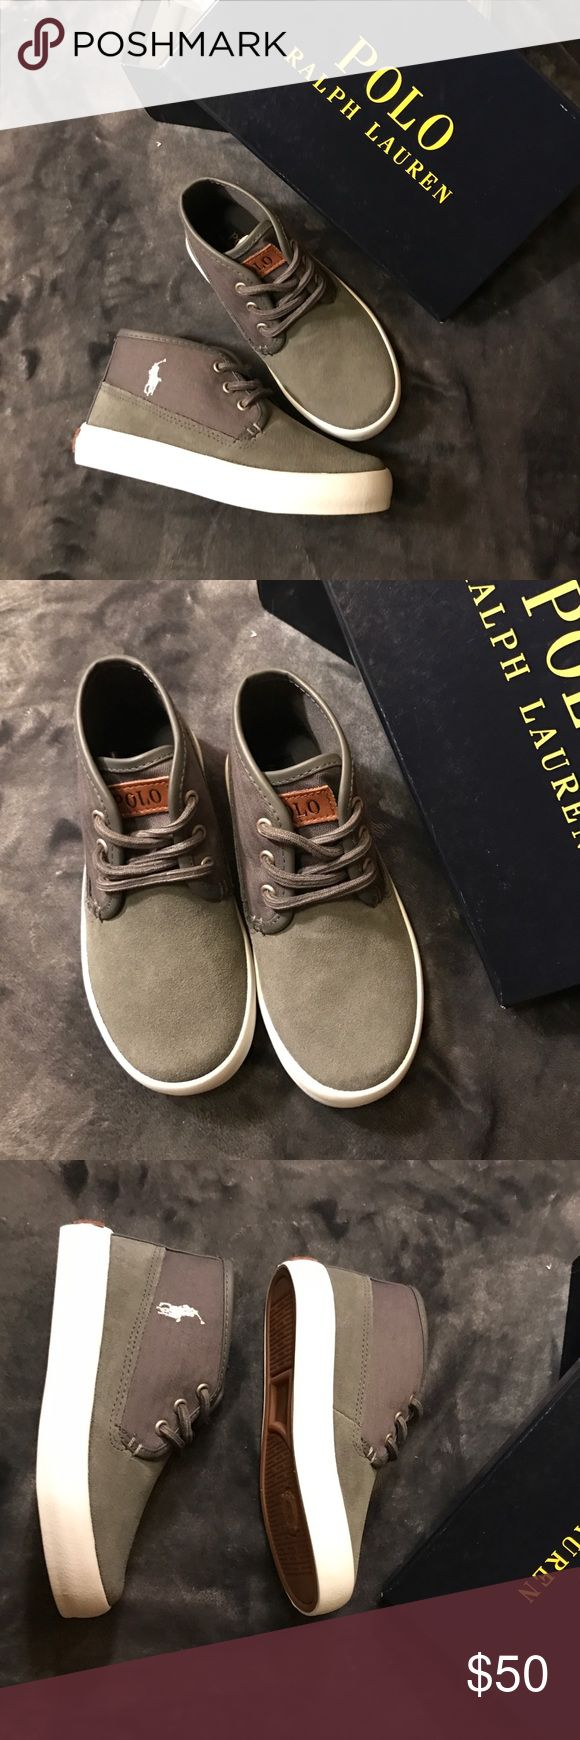 ONE DAY SALEPolo Ralph Lauren suede sneakers Gorgeous. Grey suede. Very comfortable. Great spring/ summer shoes.  Color grey. Model: Waylon mid. Size toddler US 10 UK 9.5 EUR 26.5 CM 16 Polo by Ralph Lauren Shoes Sneakers